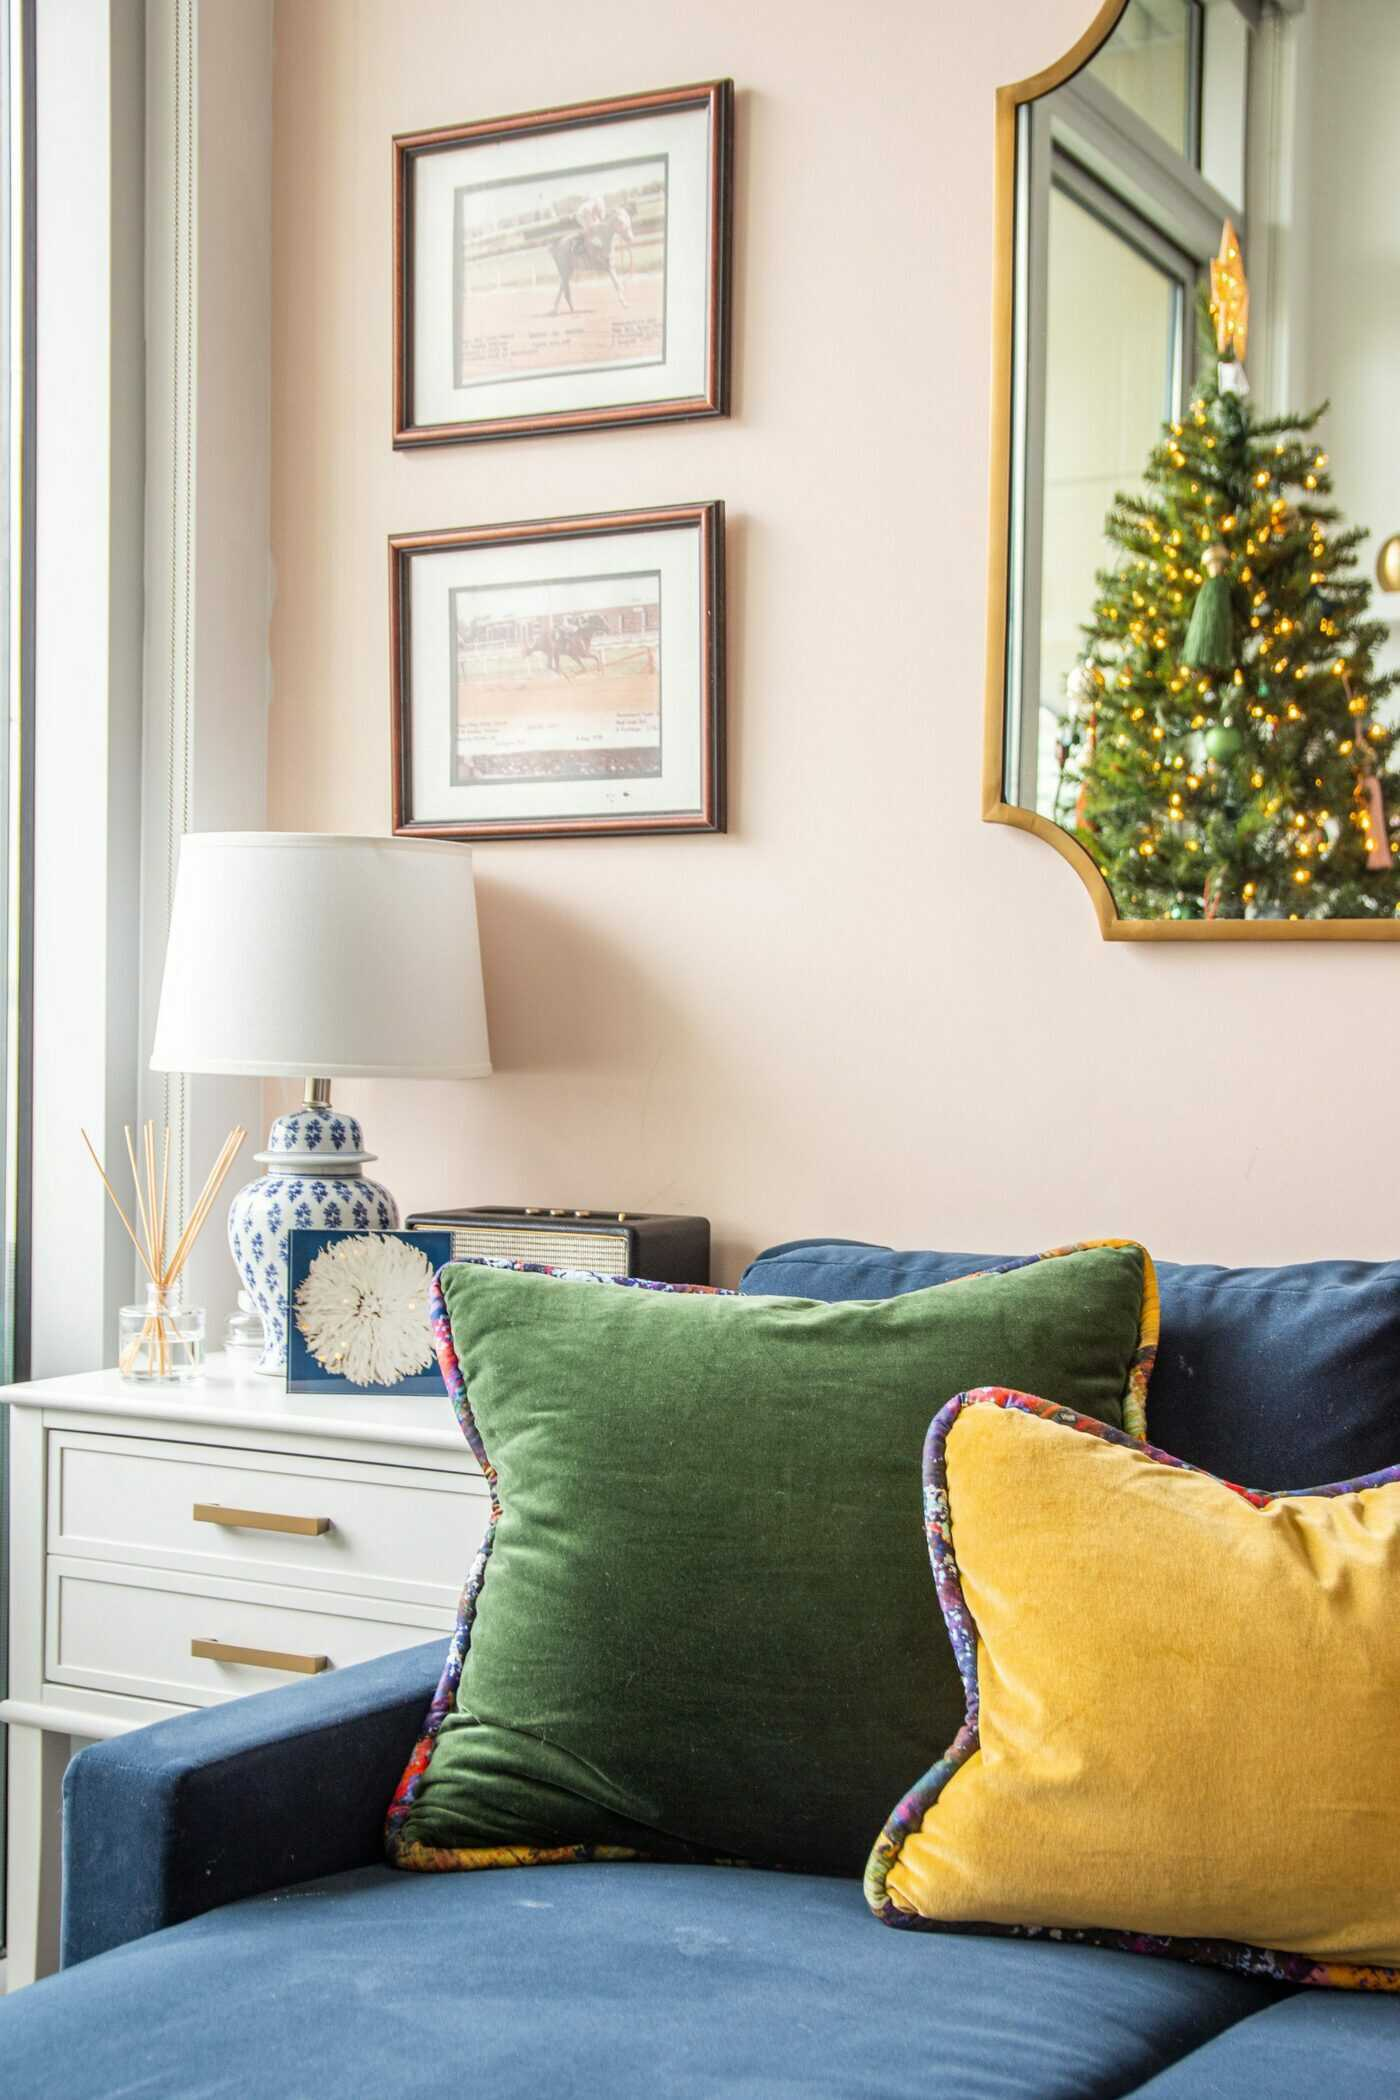 For his cousin's holiday decor, interior designer Kevin O'Gara mixes his traditional southern style with SmithHönig's bold playfulness through texture, tassels and jewel tones.